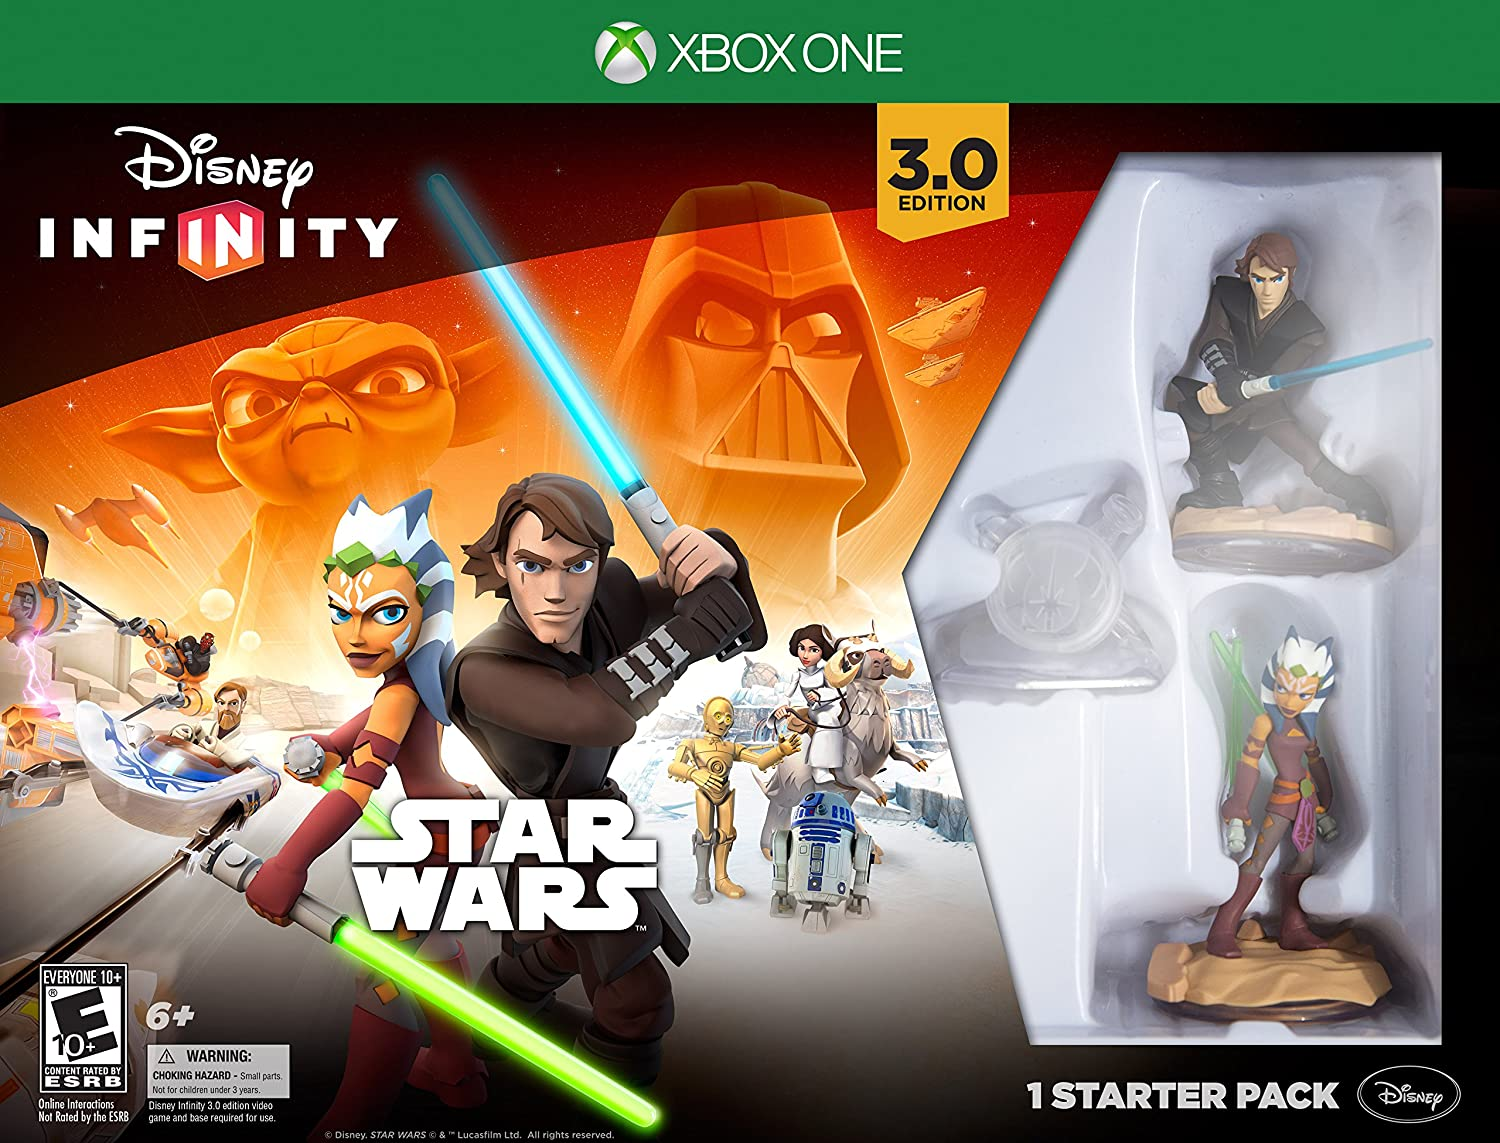 infinity 3 0. Amazon.com: Disney Infinity 3.0 Edition Star Wars Starter Pack For Xbox One: Interactive: Video Games 3 0